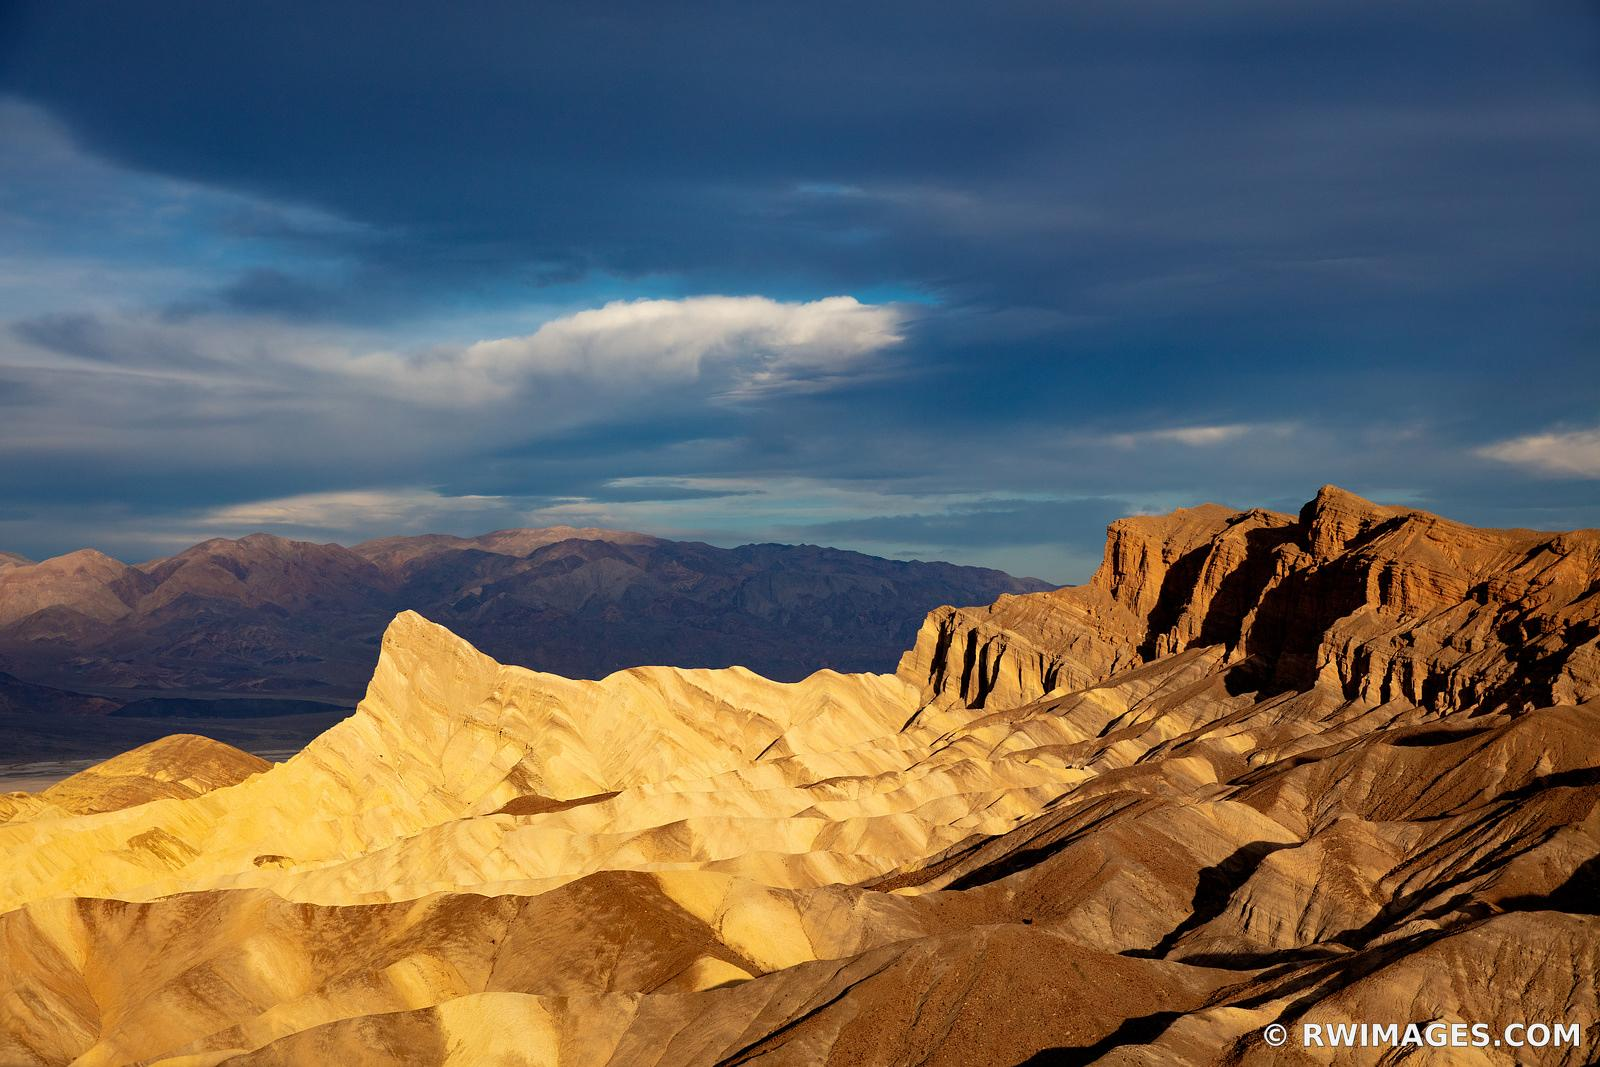 MANLY BEACON ZABRISKIE POINT SUNRISE DEATH VALLEY CALIFORNIA